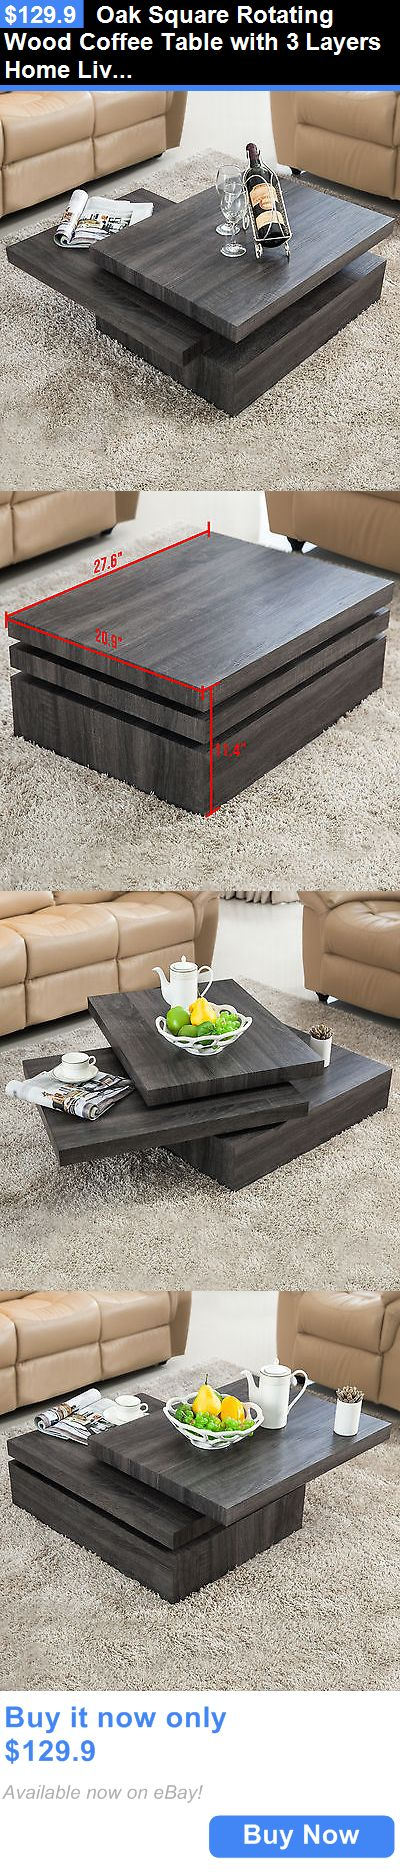 furniture: Oak Square Rotating Wood Coffee Table With 3 Layers Home Living Room Furniture BUY IT NOW ONLY: $129.9